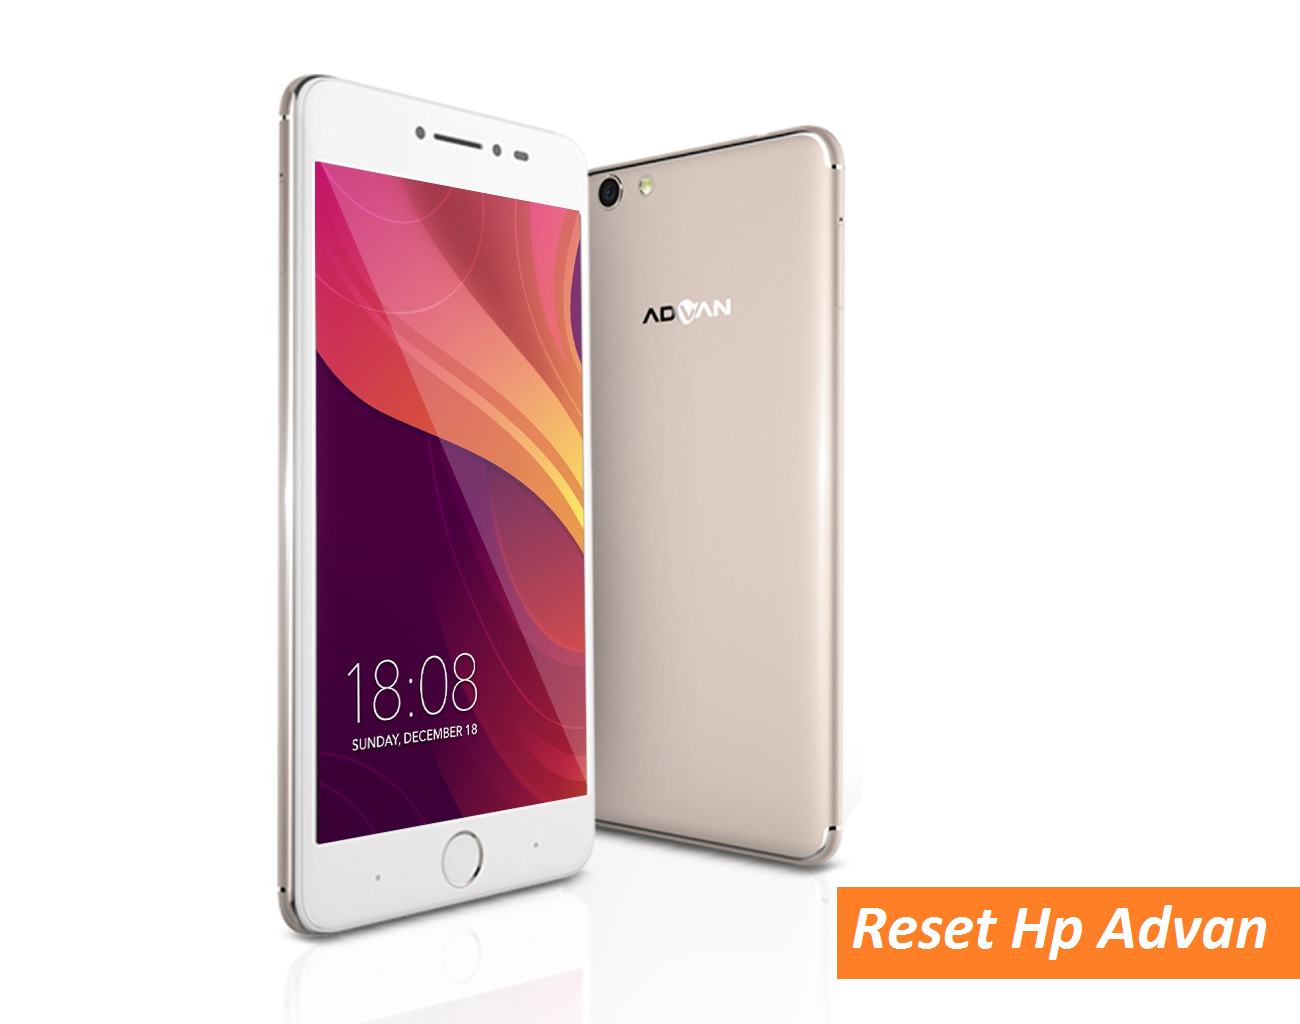 cara hard reset hp advan factory reset